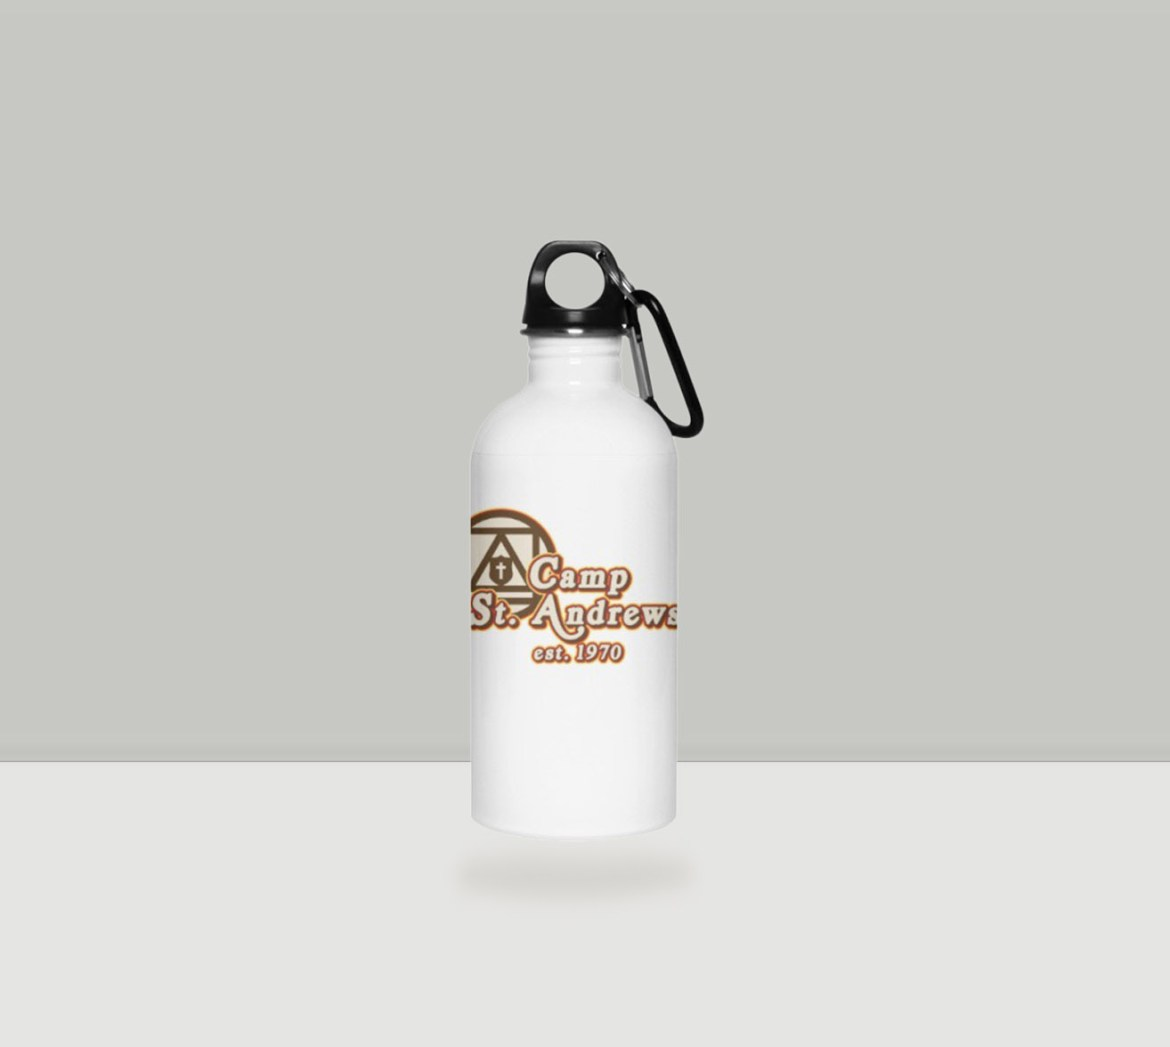 Camp St. Andrews 2020 70s Style Water Bottle